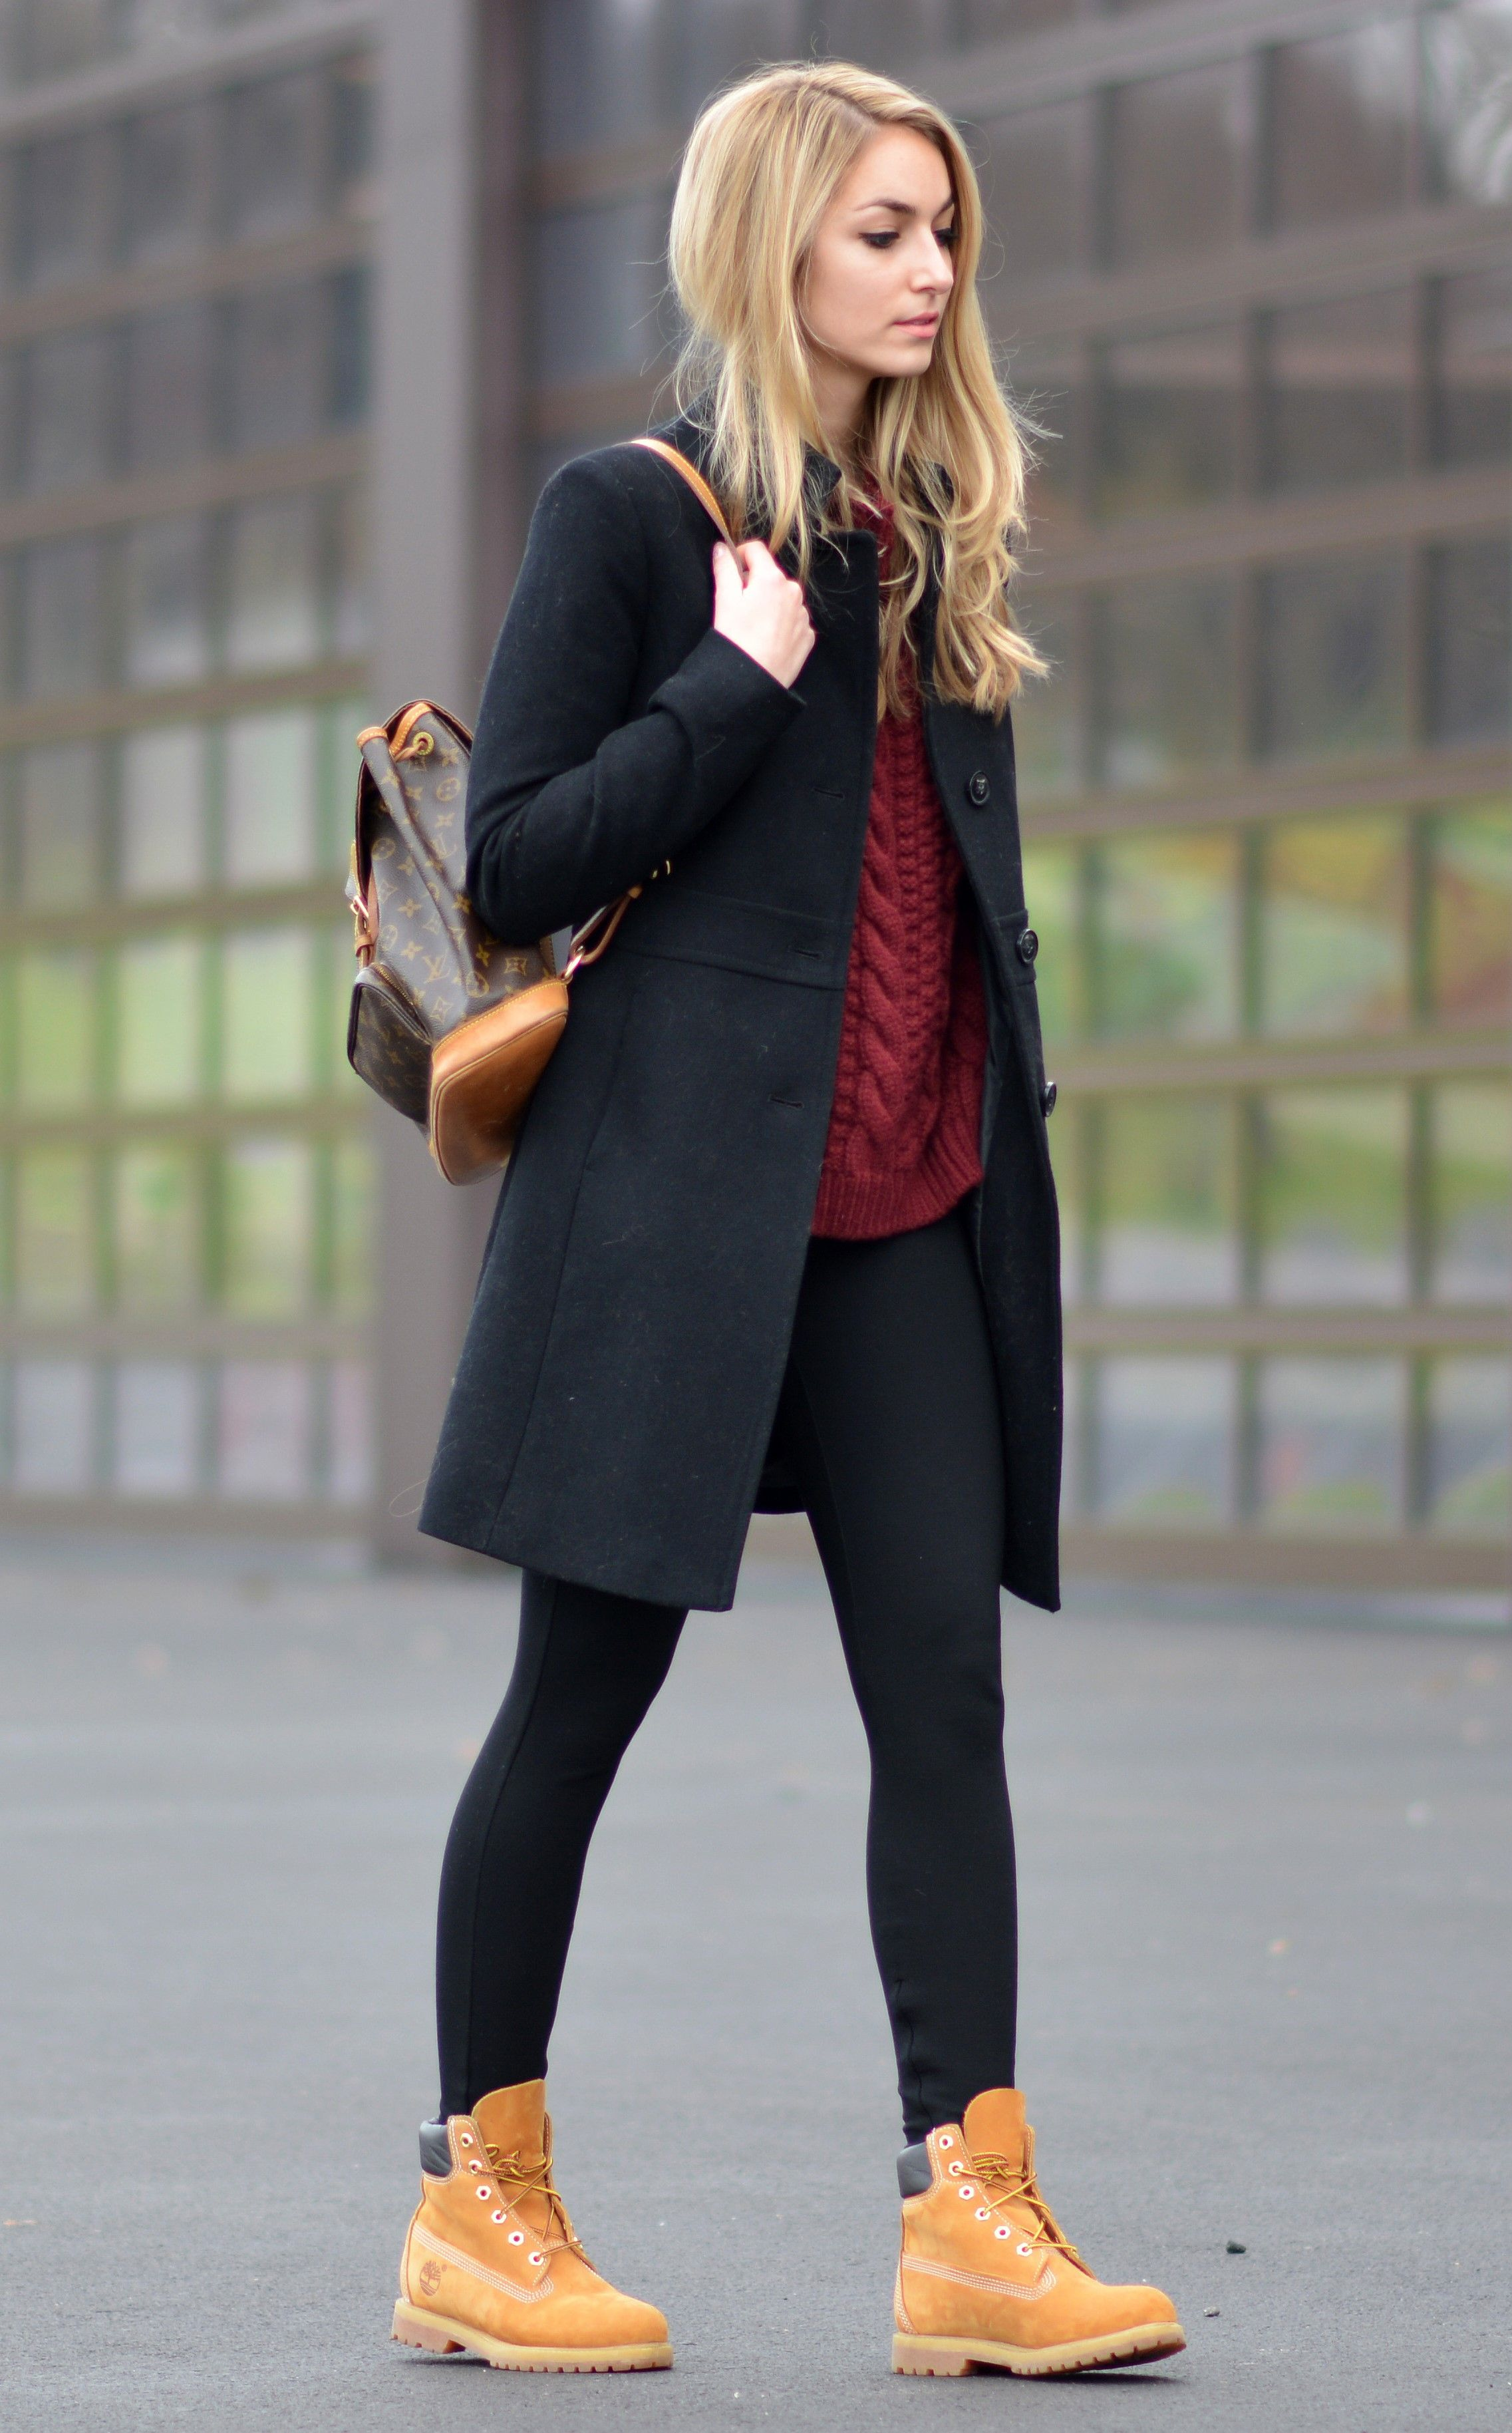 b798eb2d87c Timberlands will look great worn with a simplistic leggings and knitwear  outfit